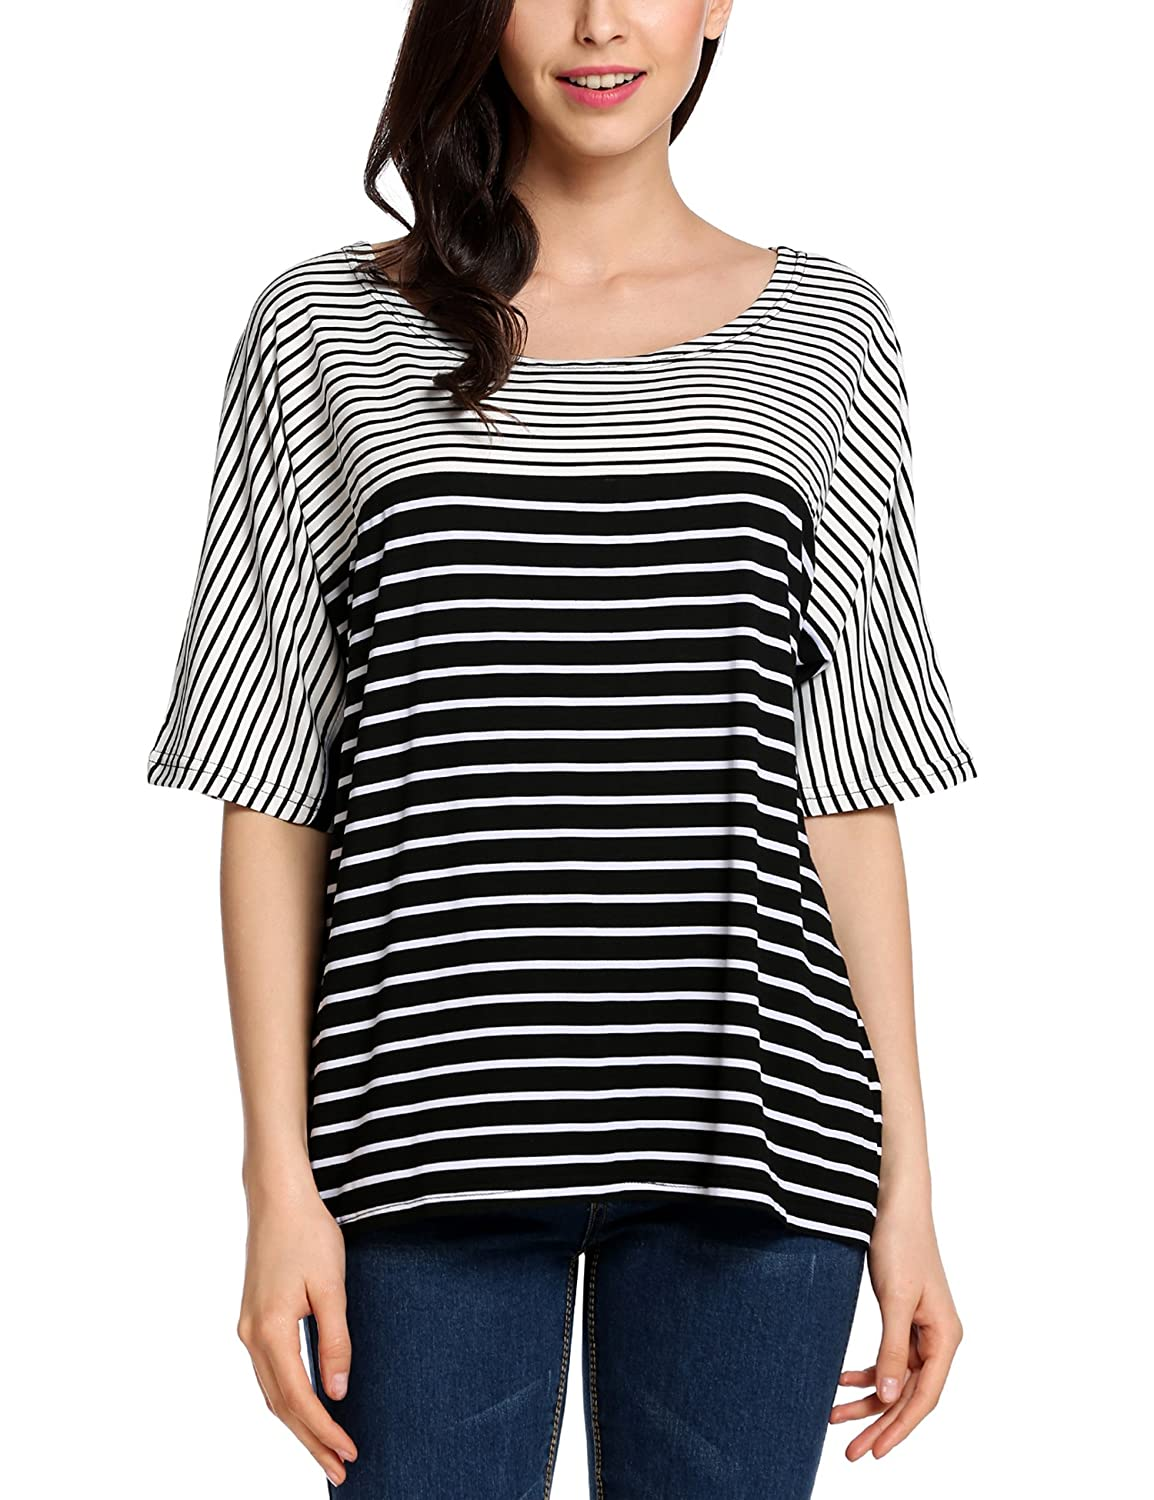 Meaneor Women Summer Striped CasualTops Blouse Batwing Sleeve Comfy Loose T-Shirts